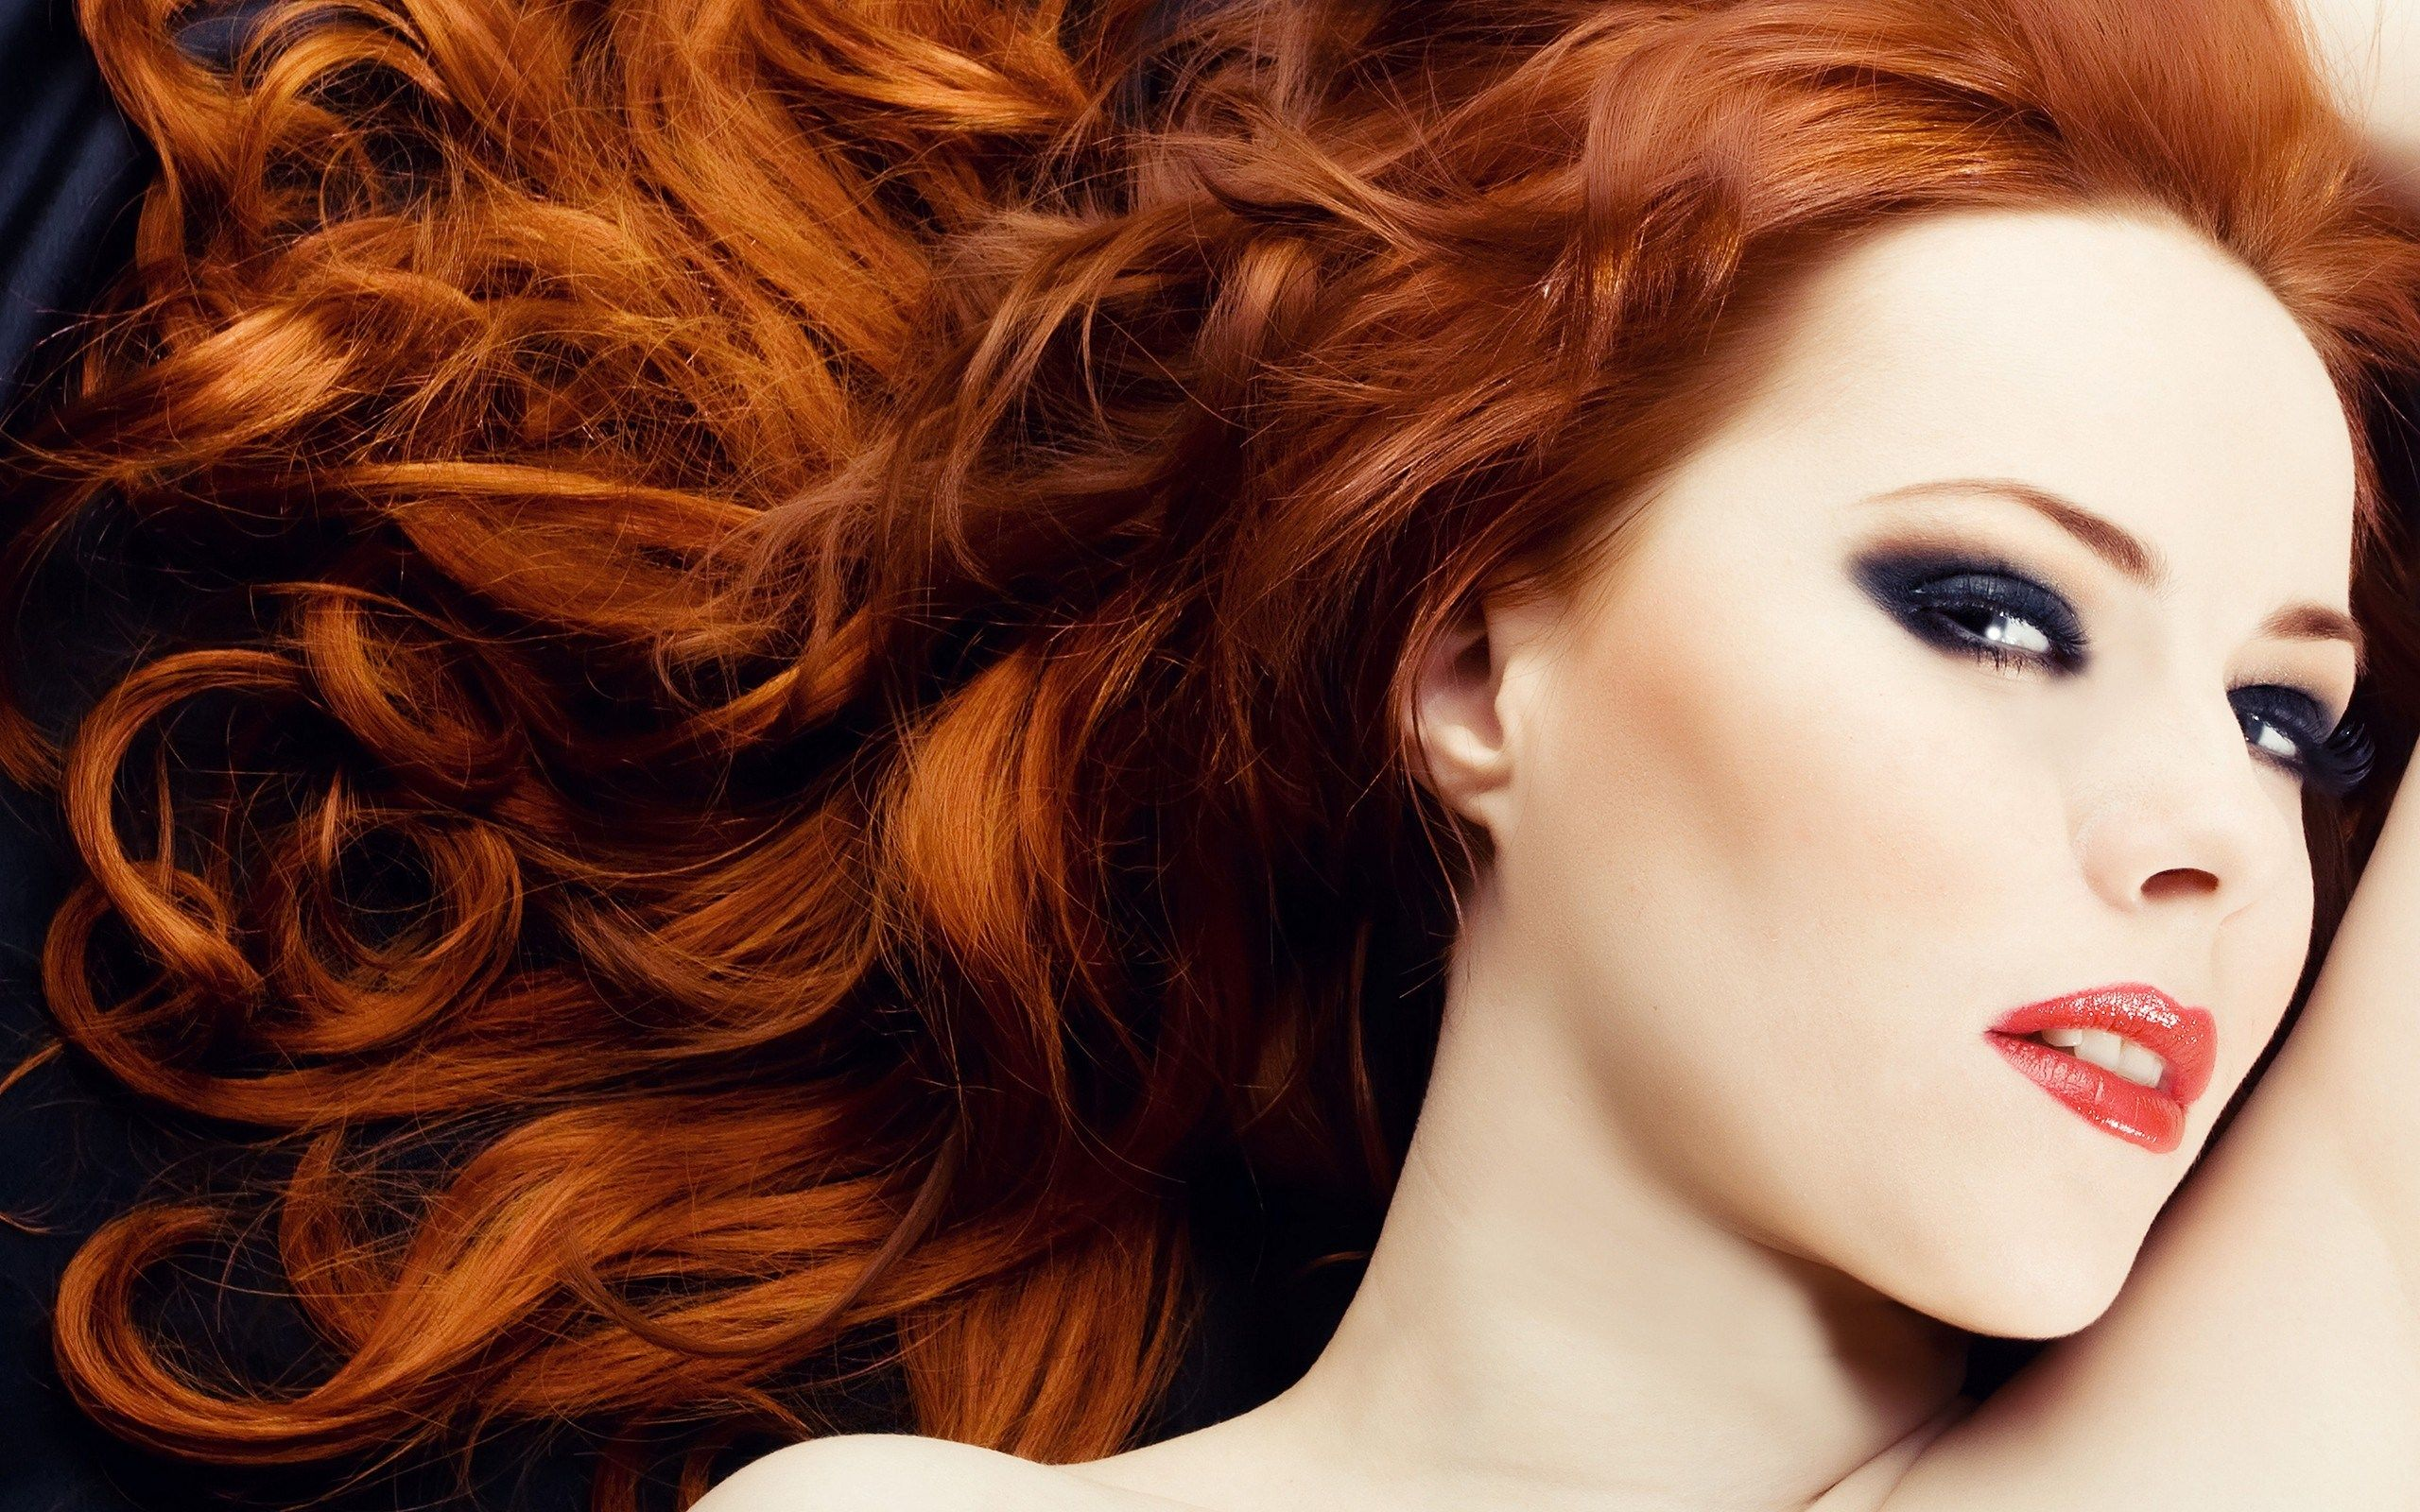 Redhead Woman Portrait Long Curly Hair HD Wallpaper